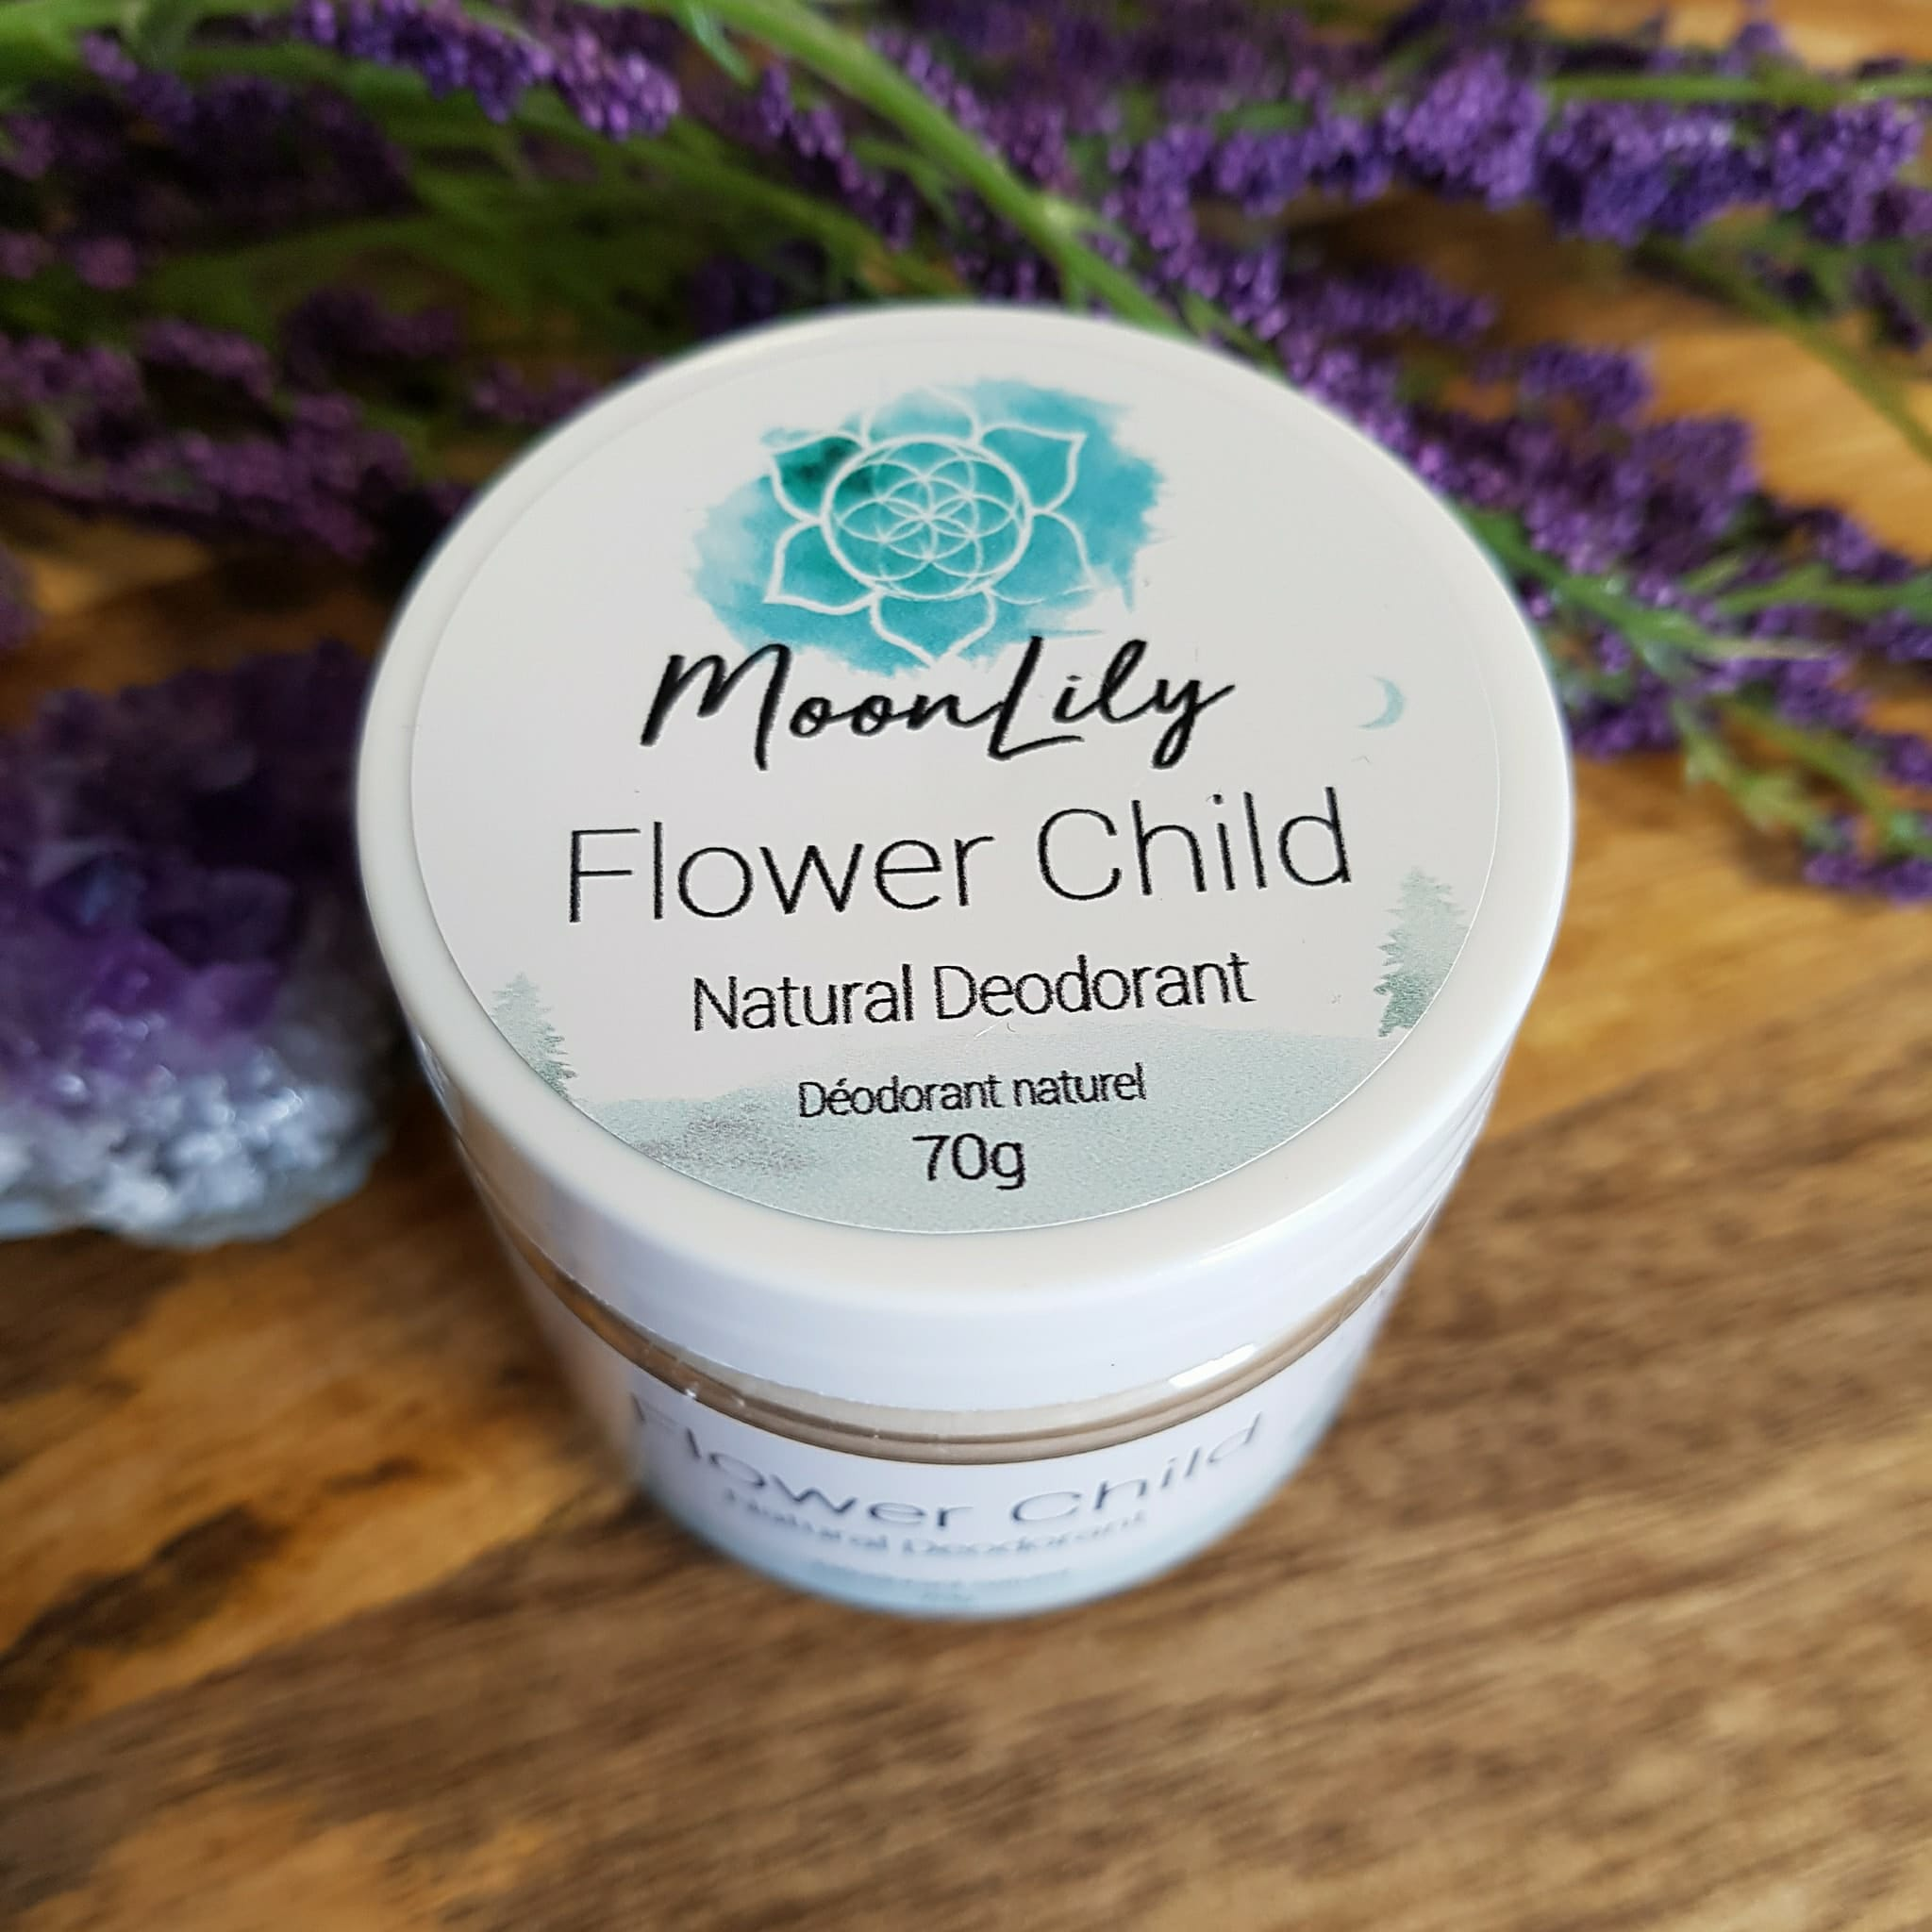 Natural Deodorant Flower Child Moonlily Wellness